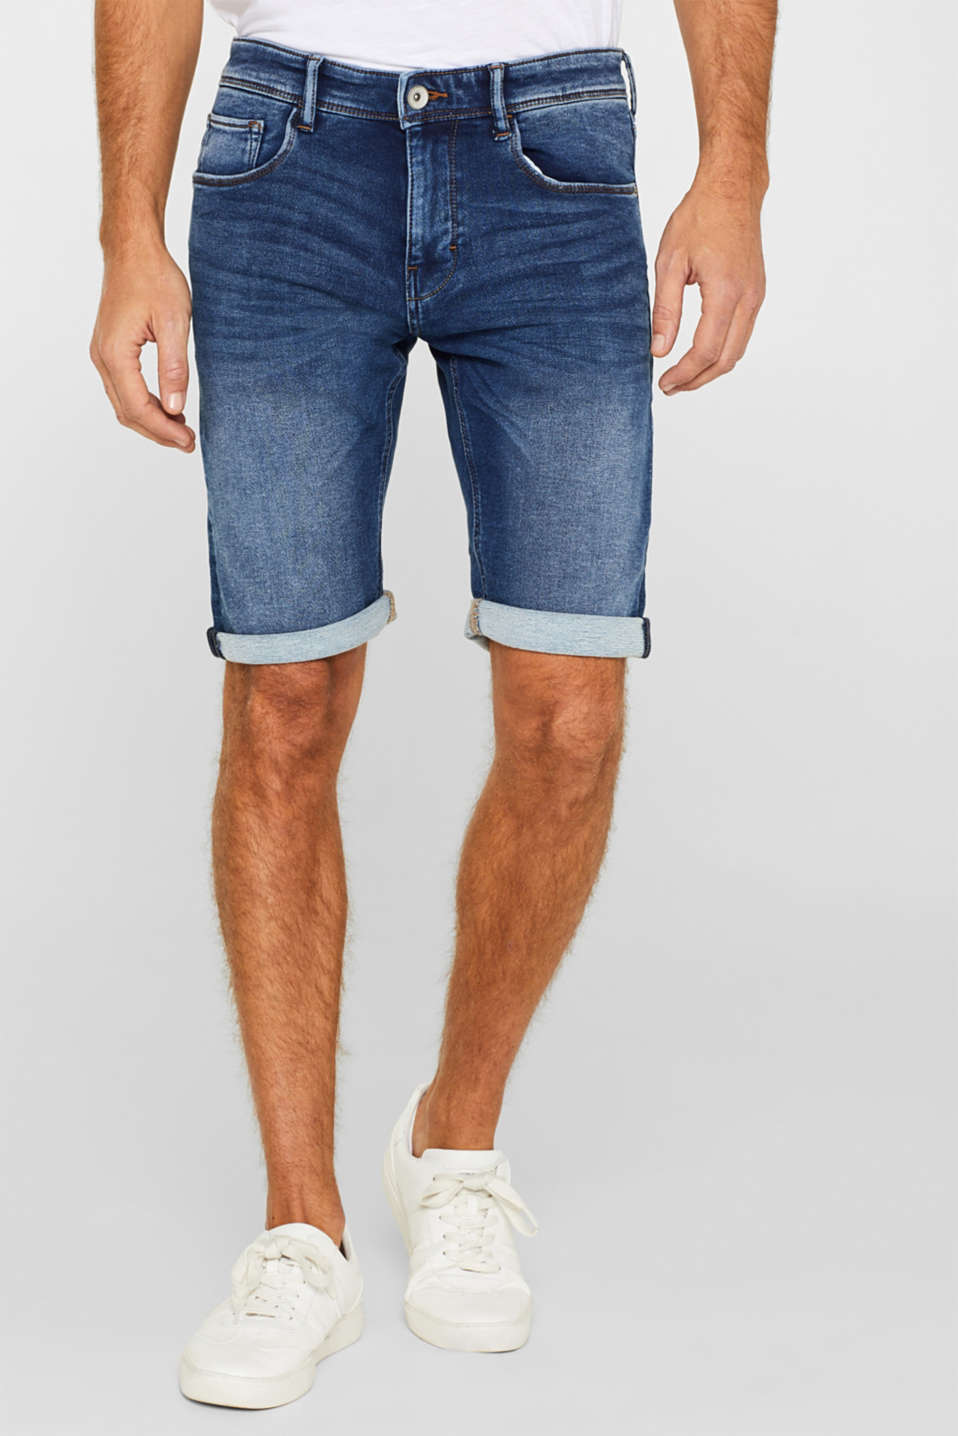 Esprit - Denim short van joggingstof met superstretch